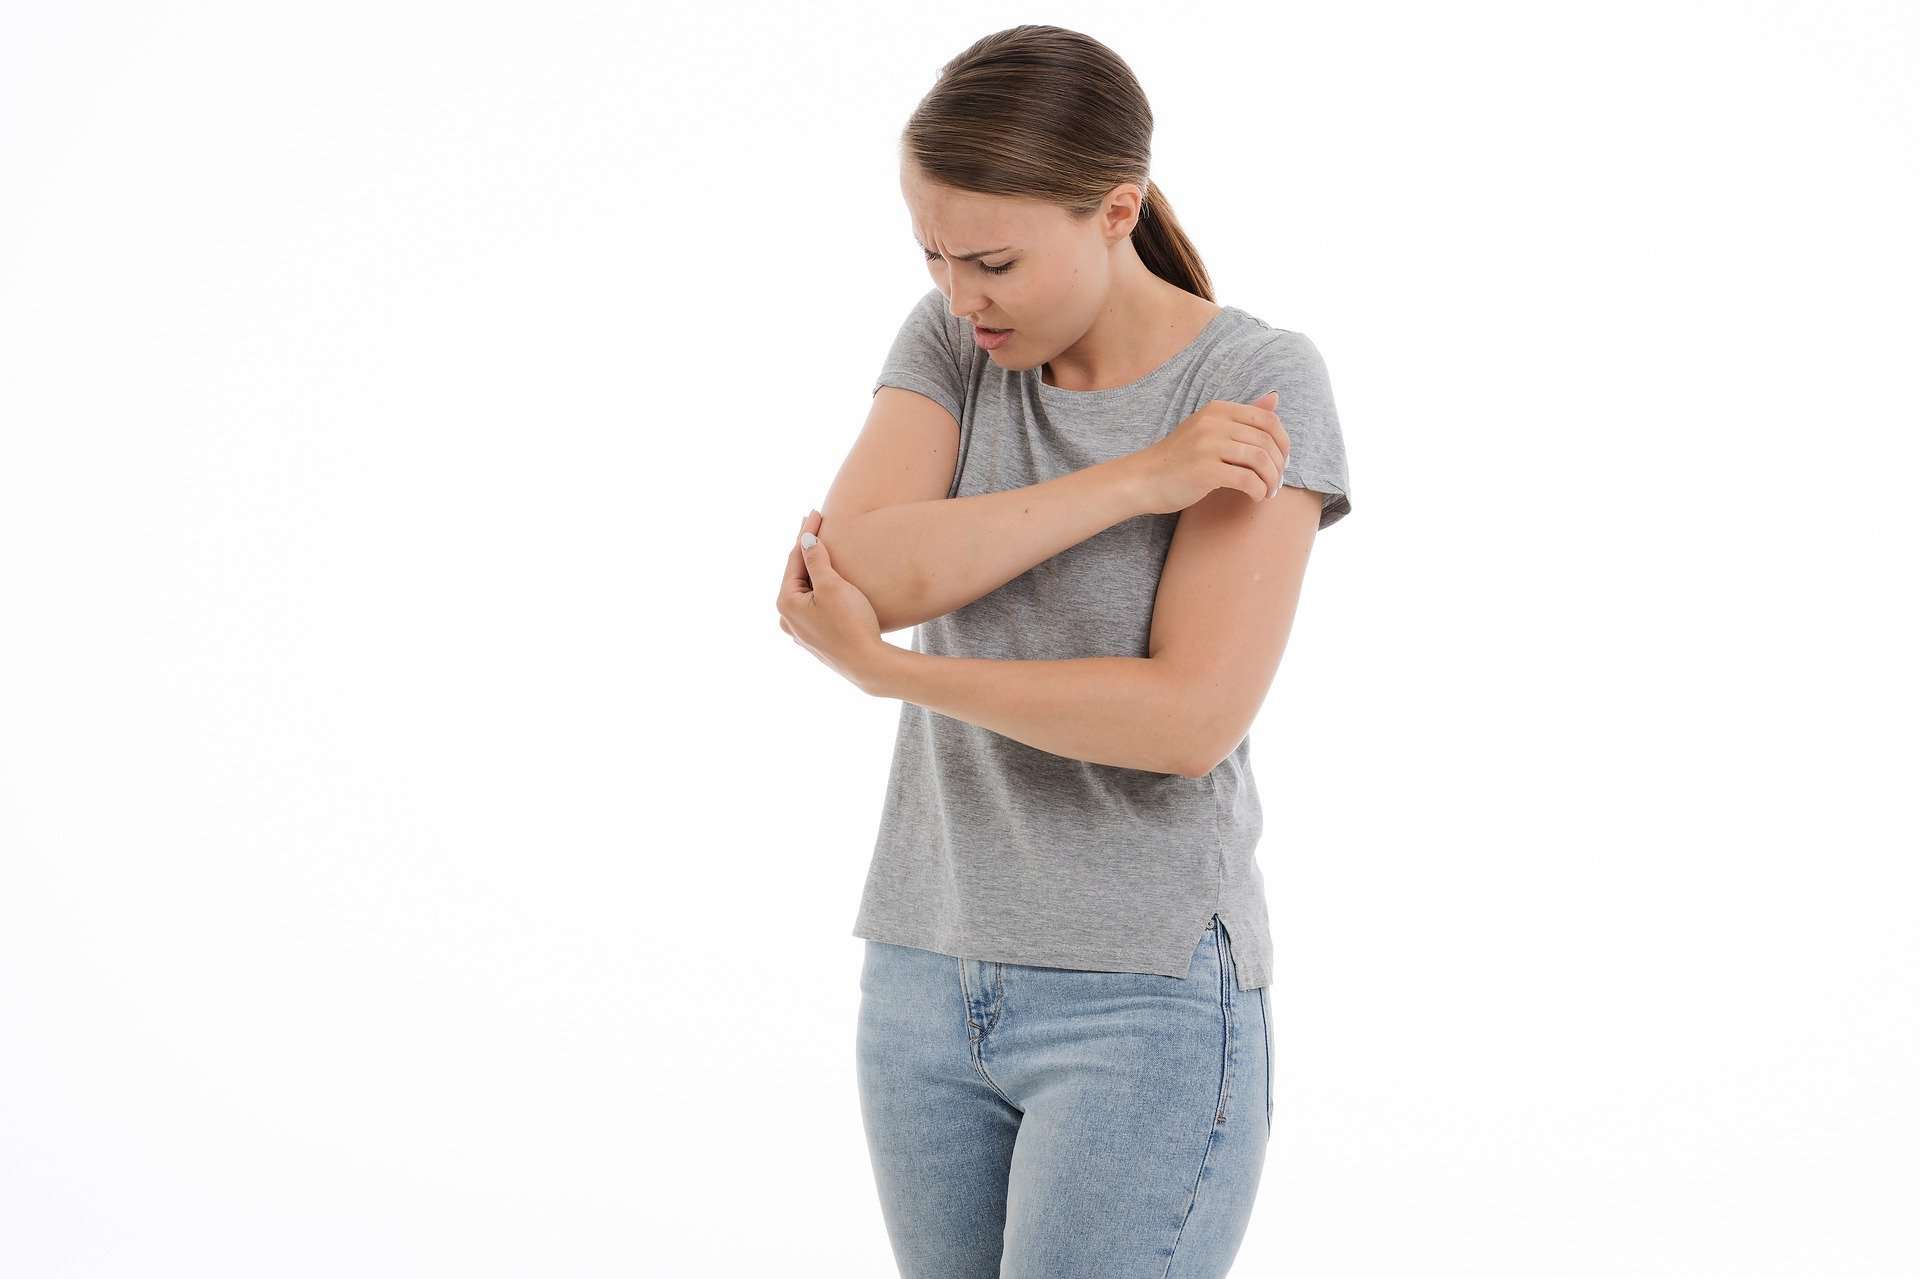 tennis-elbow-physical-therapy